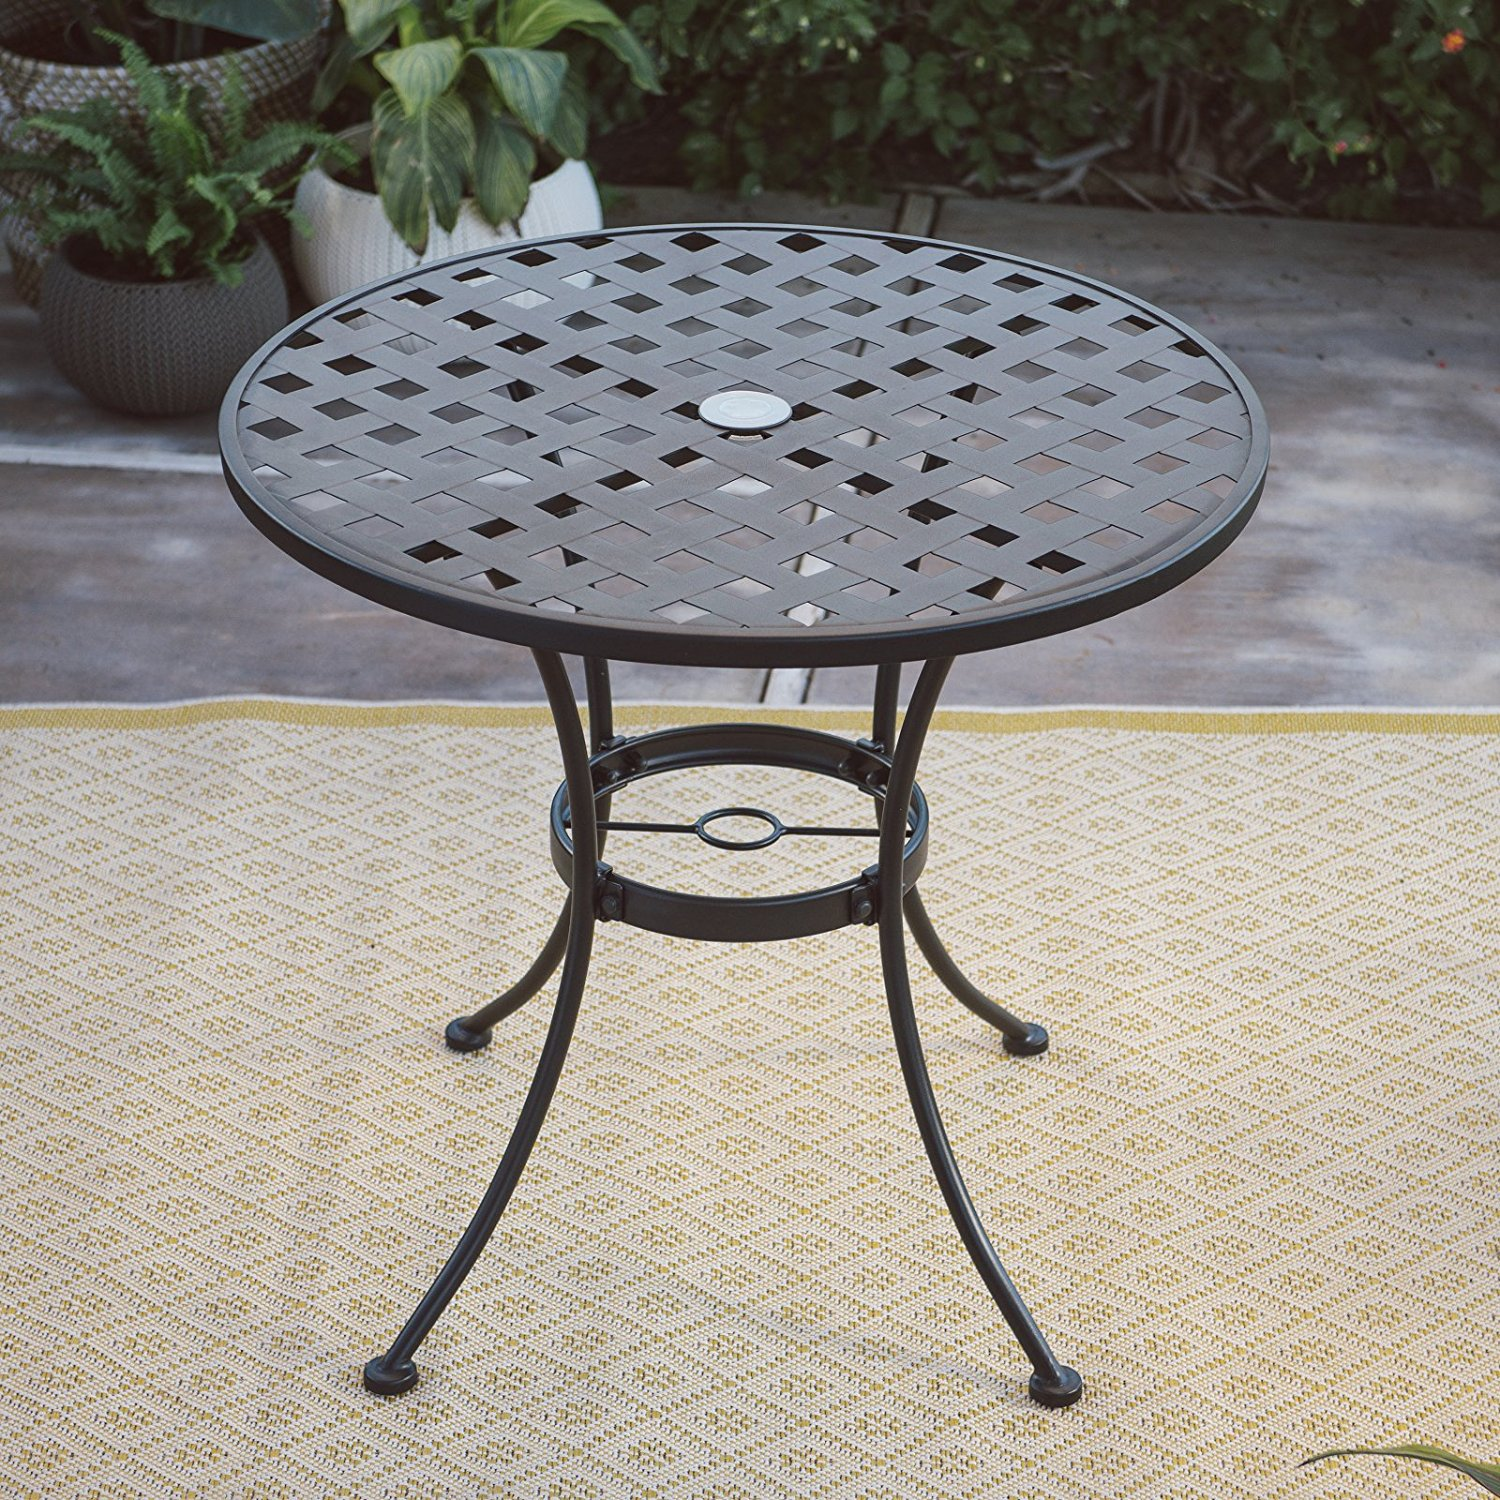 b425805da9d09 Cheap Black Wrought Iron Patio Table